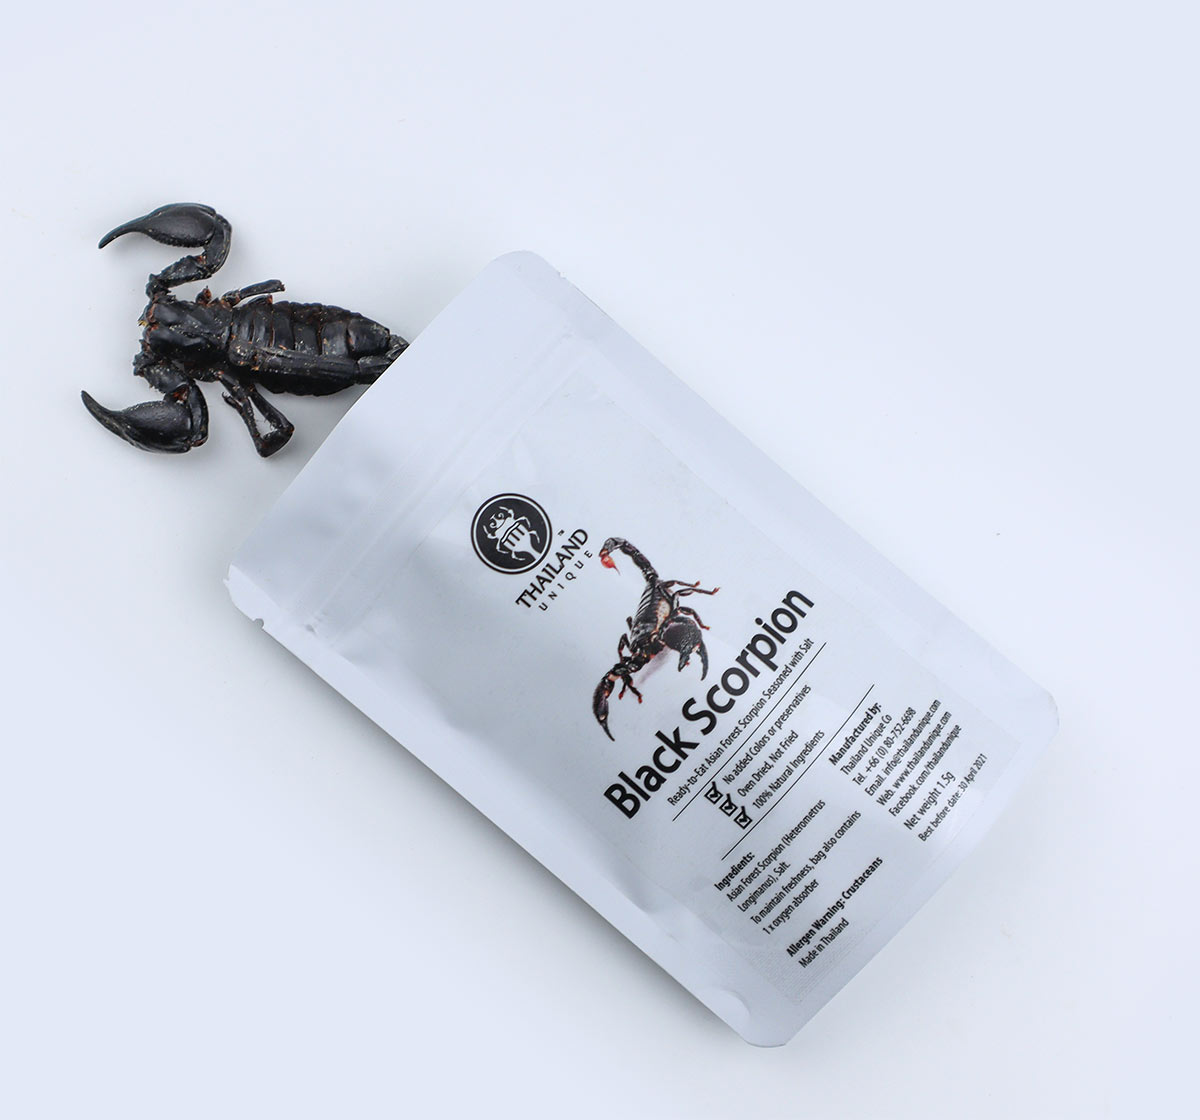 edible black scorpion in bag